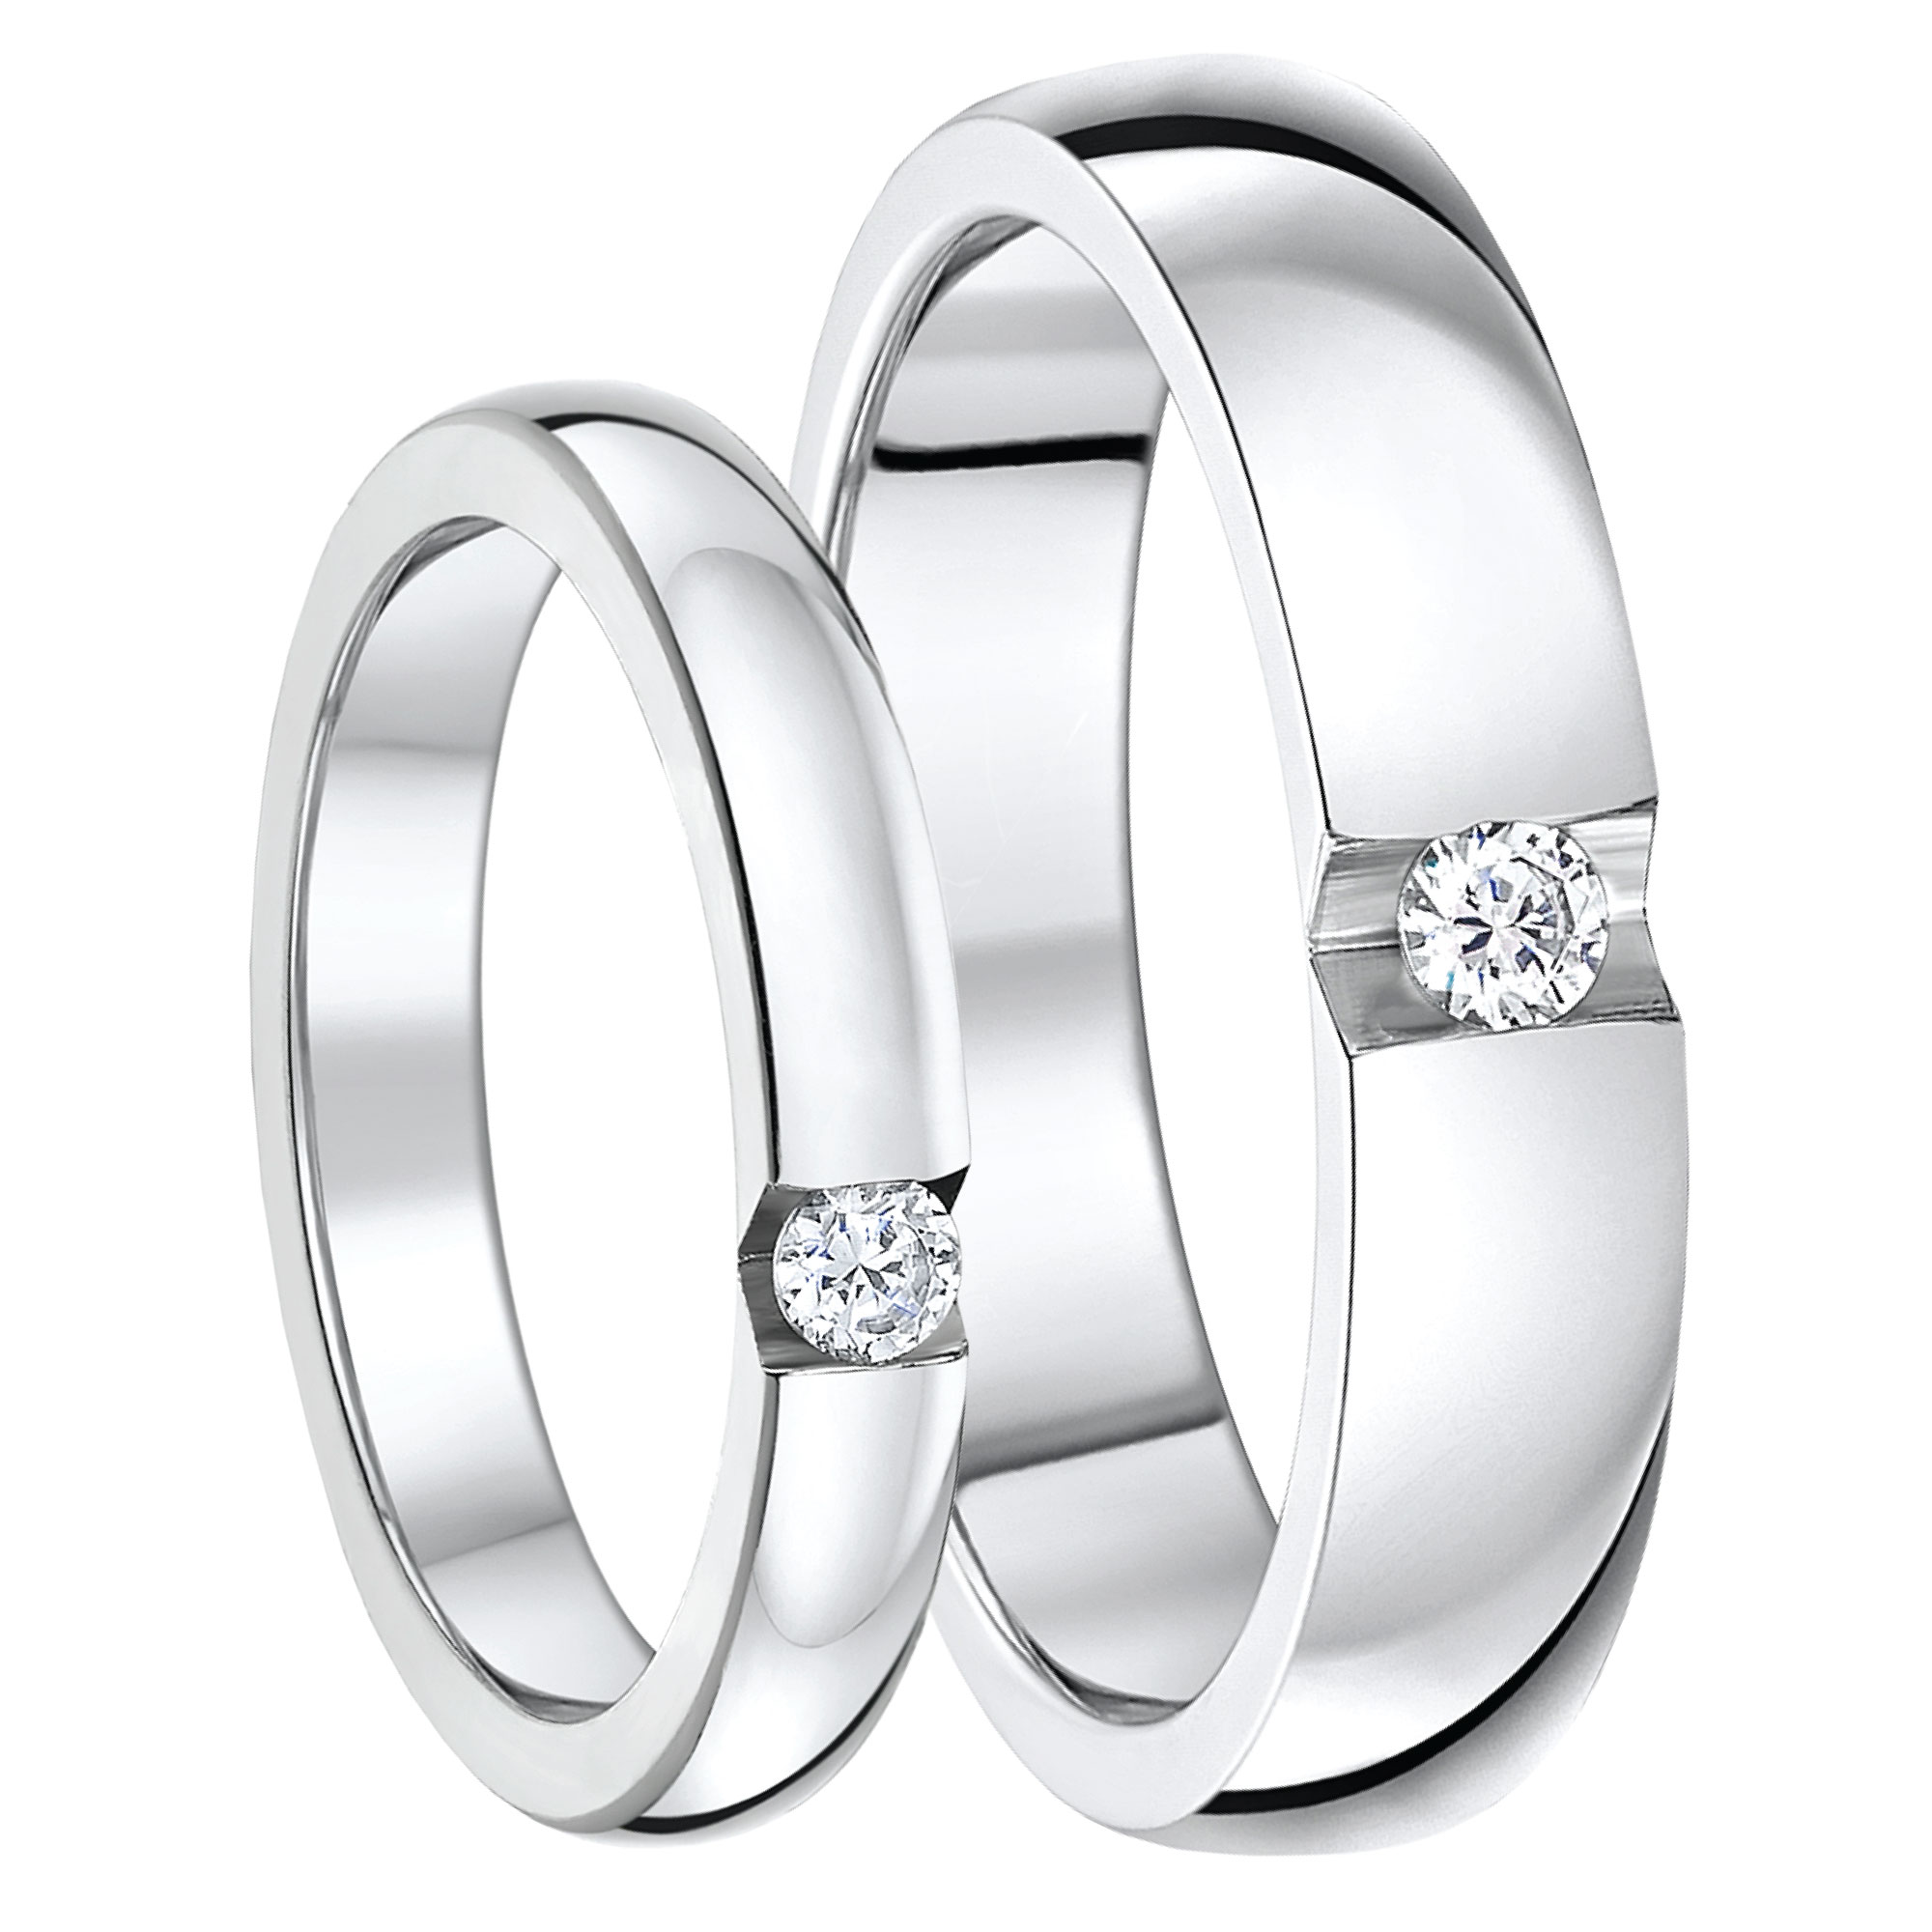 diamond matching hers and groom c wedding white gold for bride his rings sets